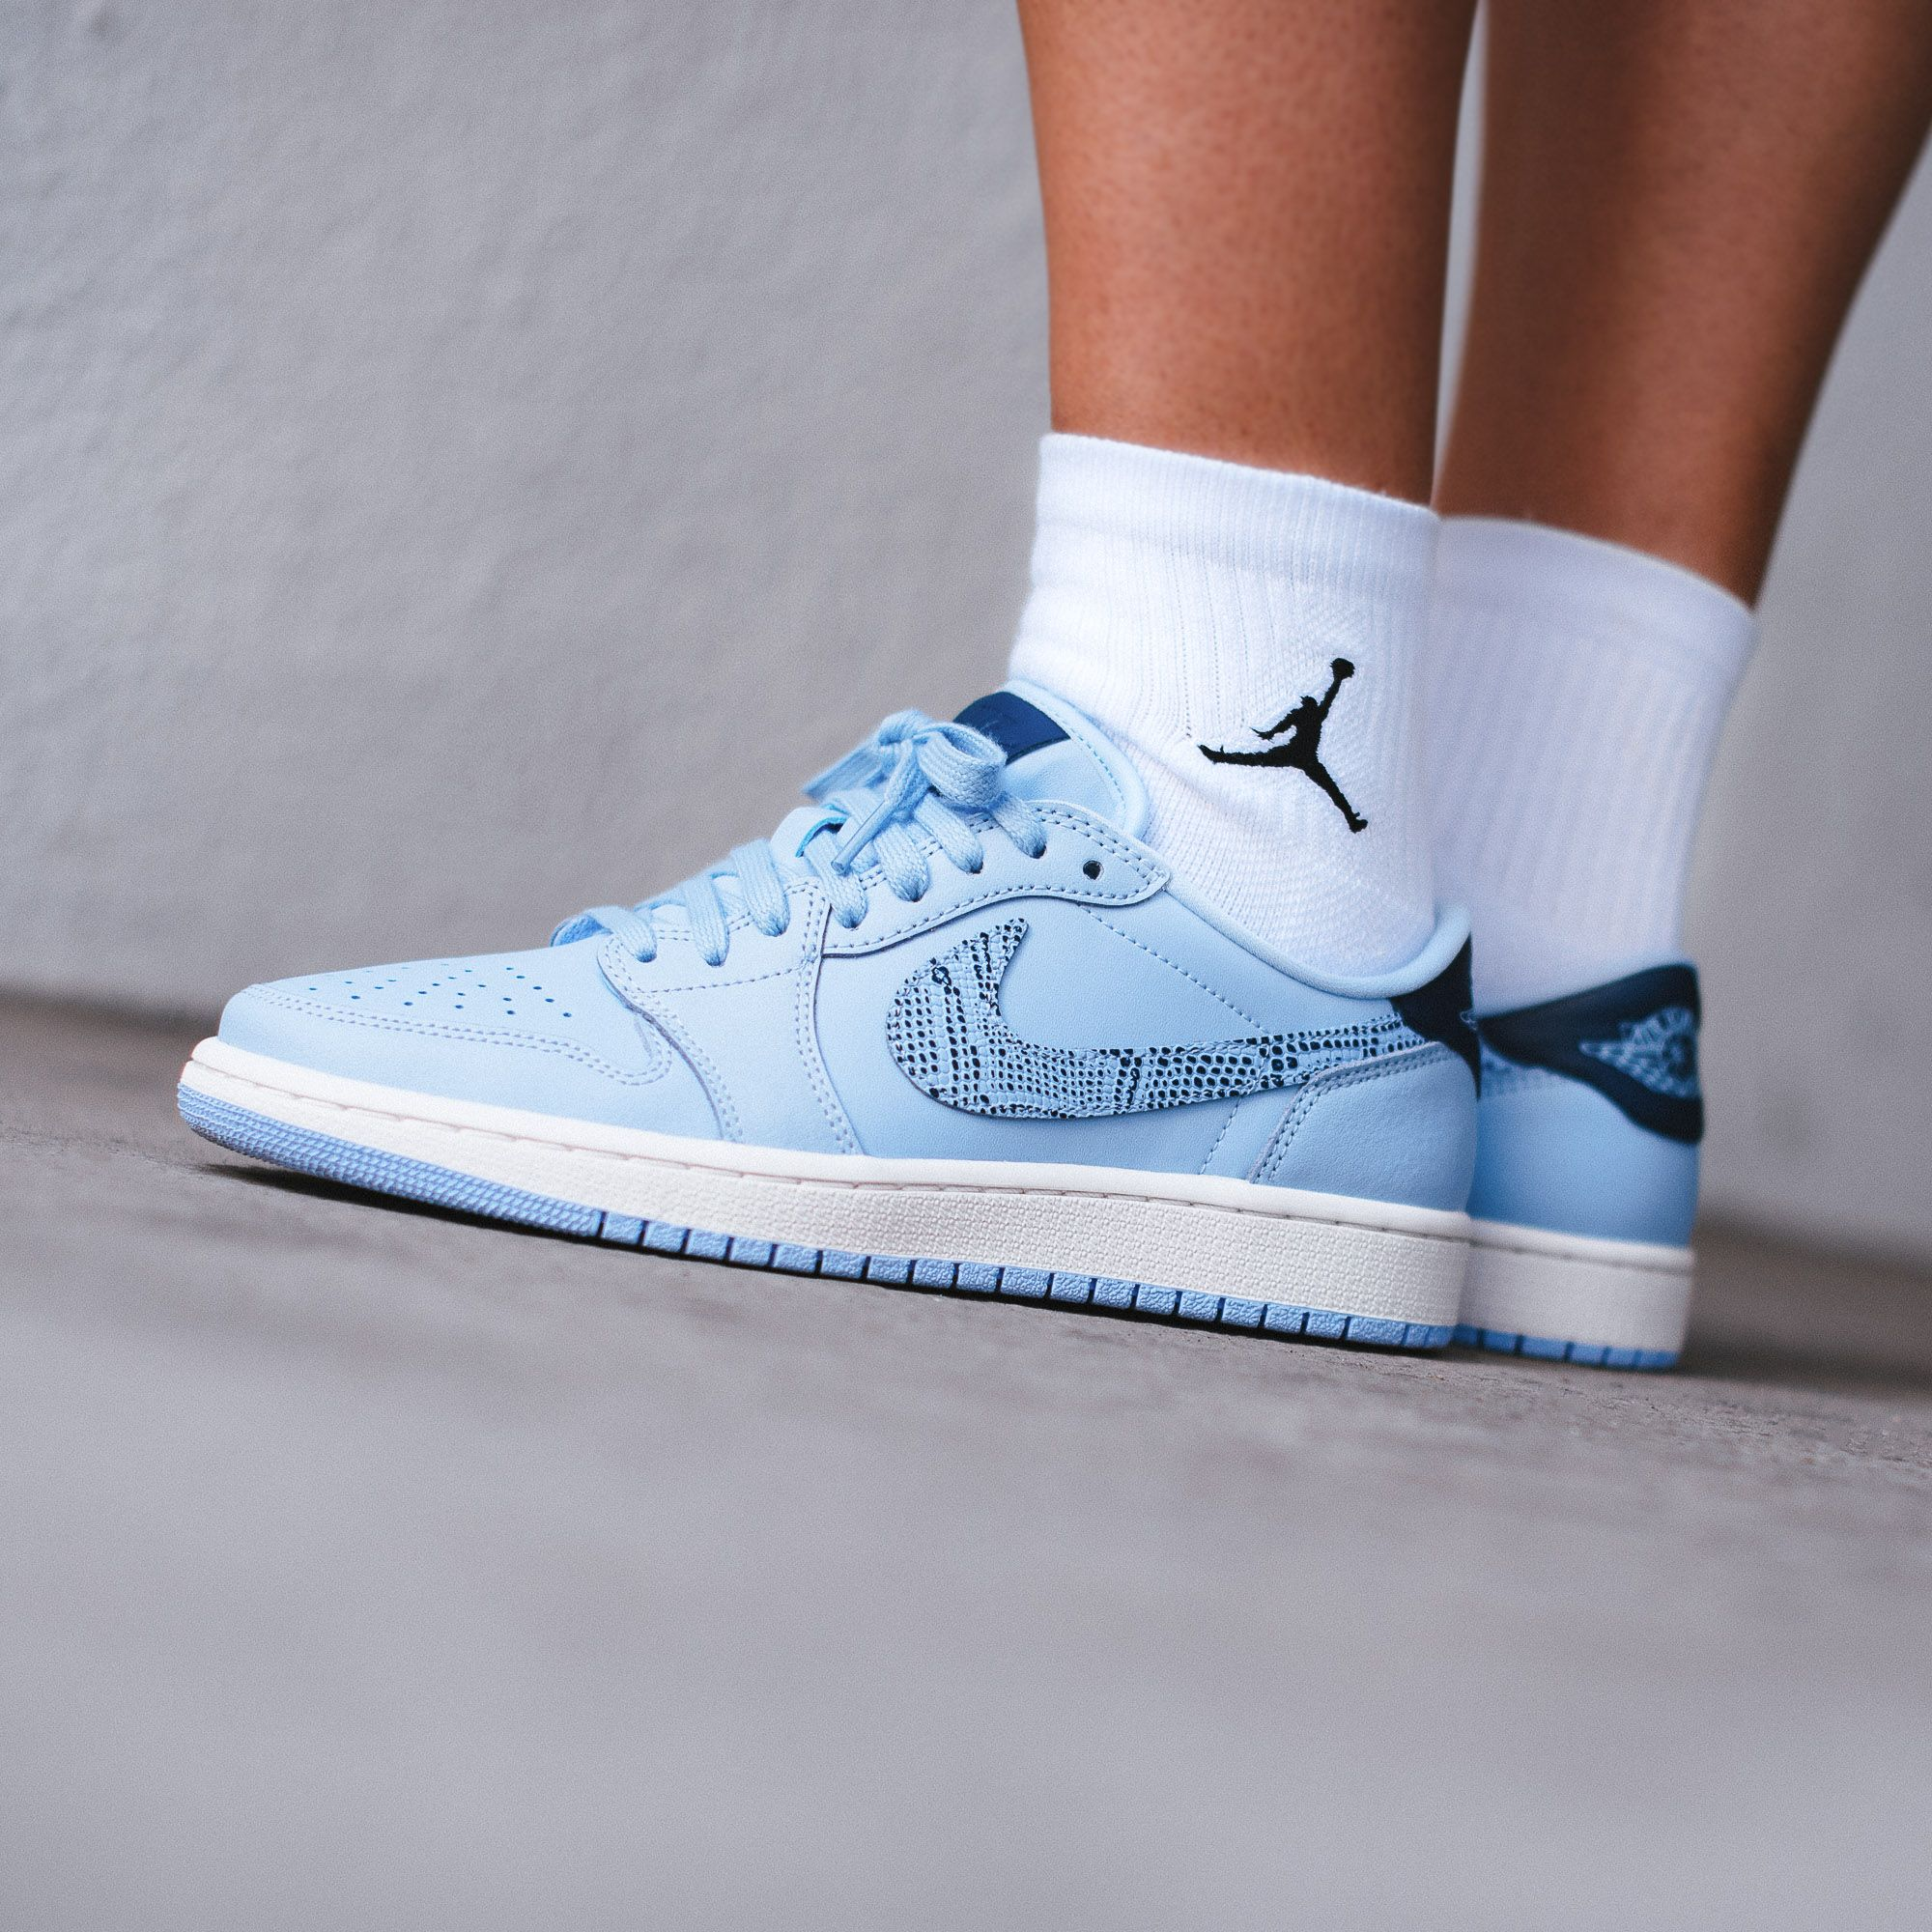 The Air Jordan 1 Low for women combines a premium upper with